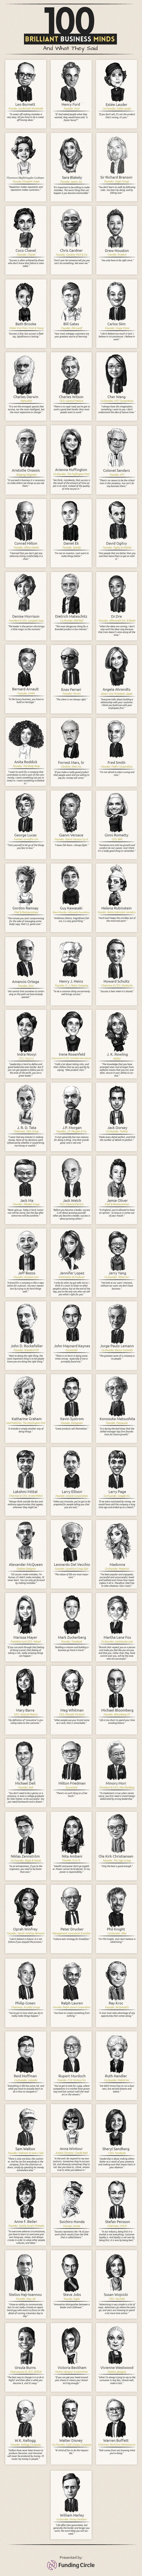 Inspirational Quotes From 100 Famous Business Leaders (Infographic)